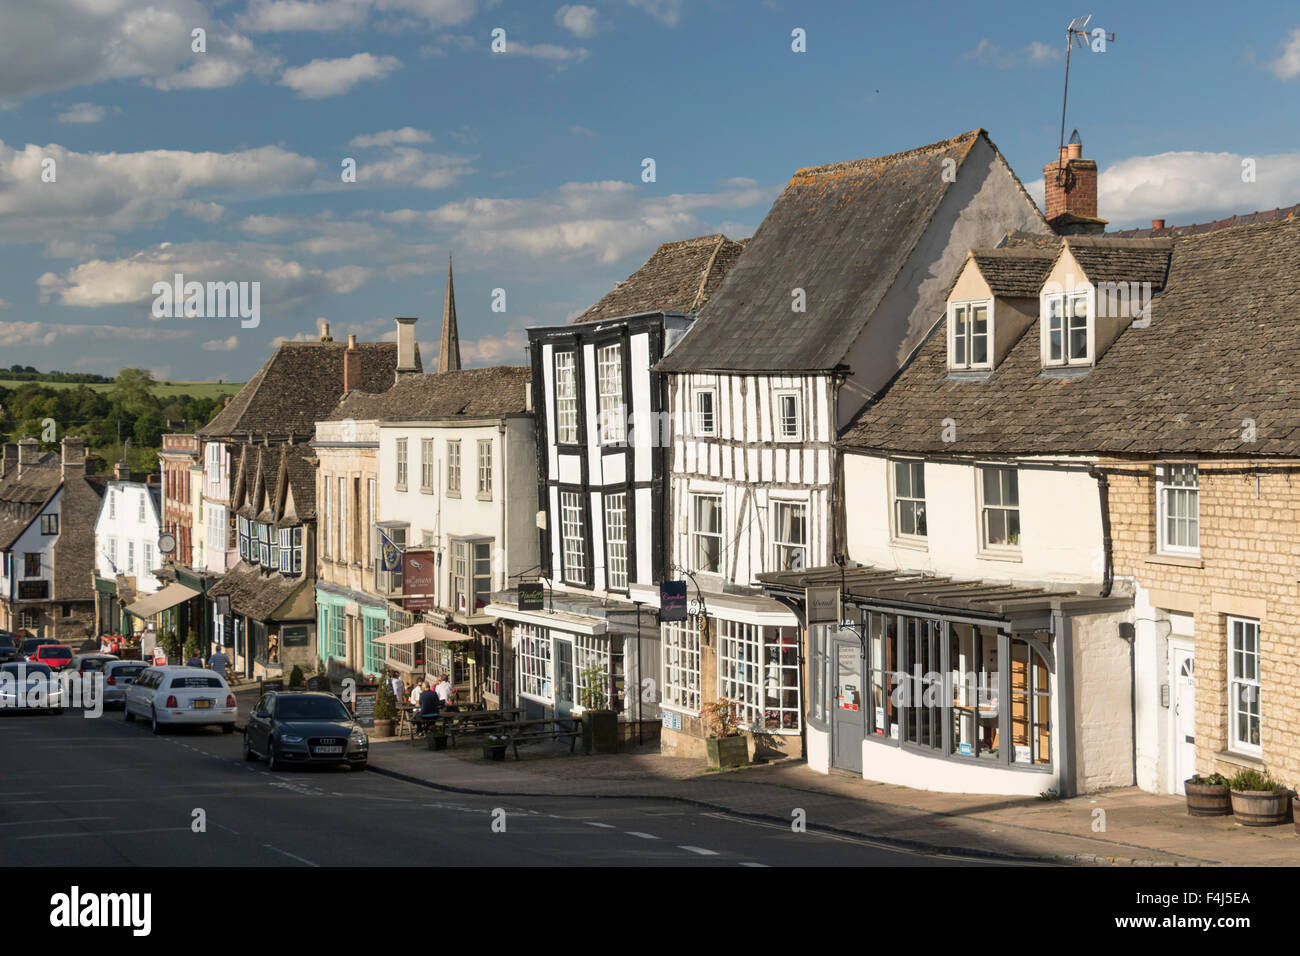 Burford, Oxfordshire, Cotswolds, England, United Kingdom, Europe - Stock Image